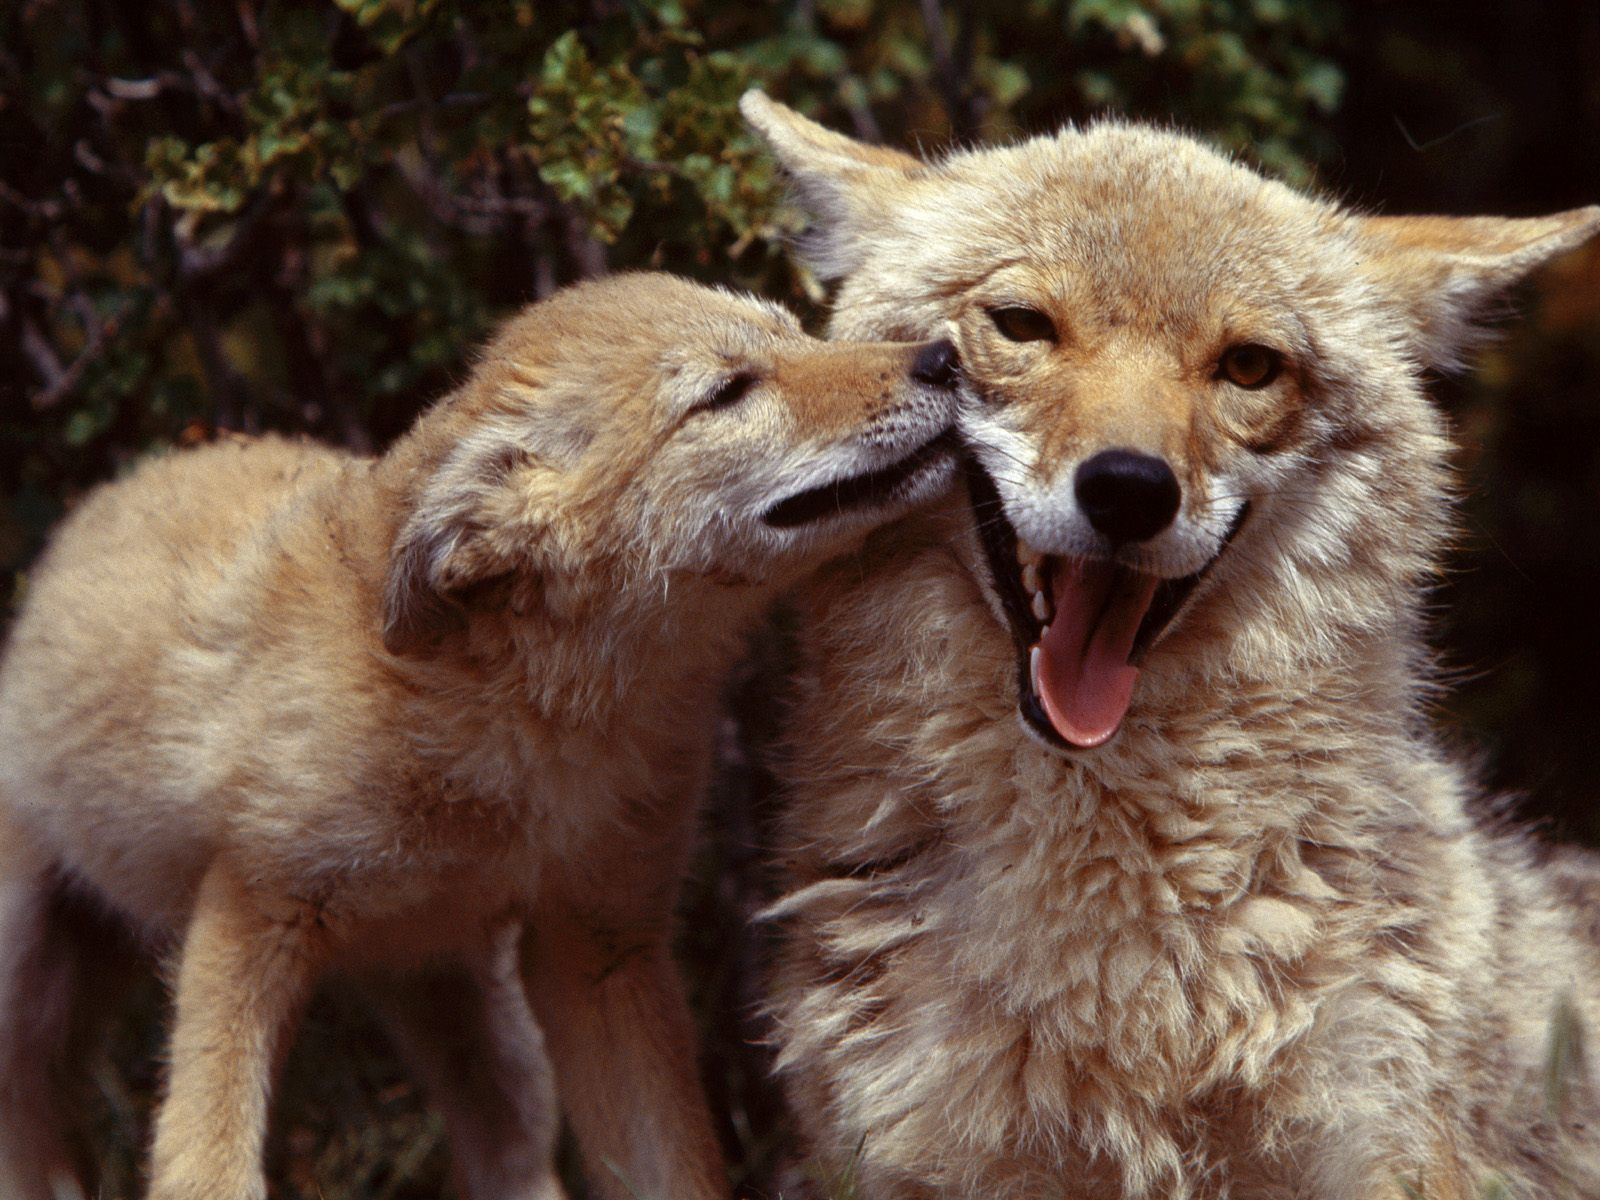 http://3.bp.blogspot.com/-N0DCUD_HLKQ/UHih0rA4nZI/AAAAAAAAMNU/-sMhC3wKl_I/s1600/Copia+de+Coyote+Mother+and+Pup.jpg